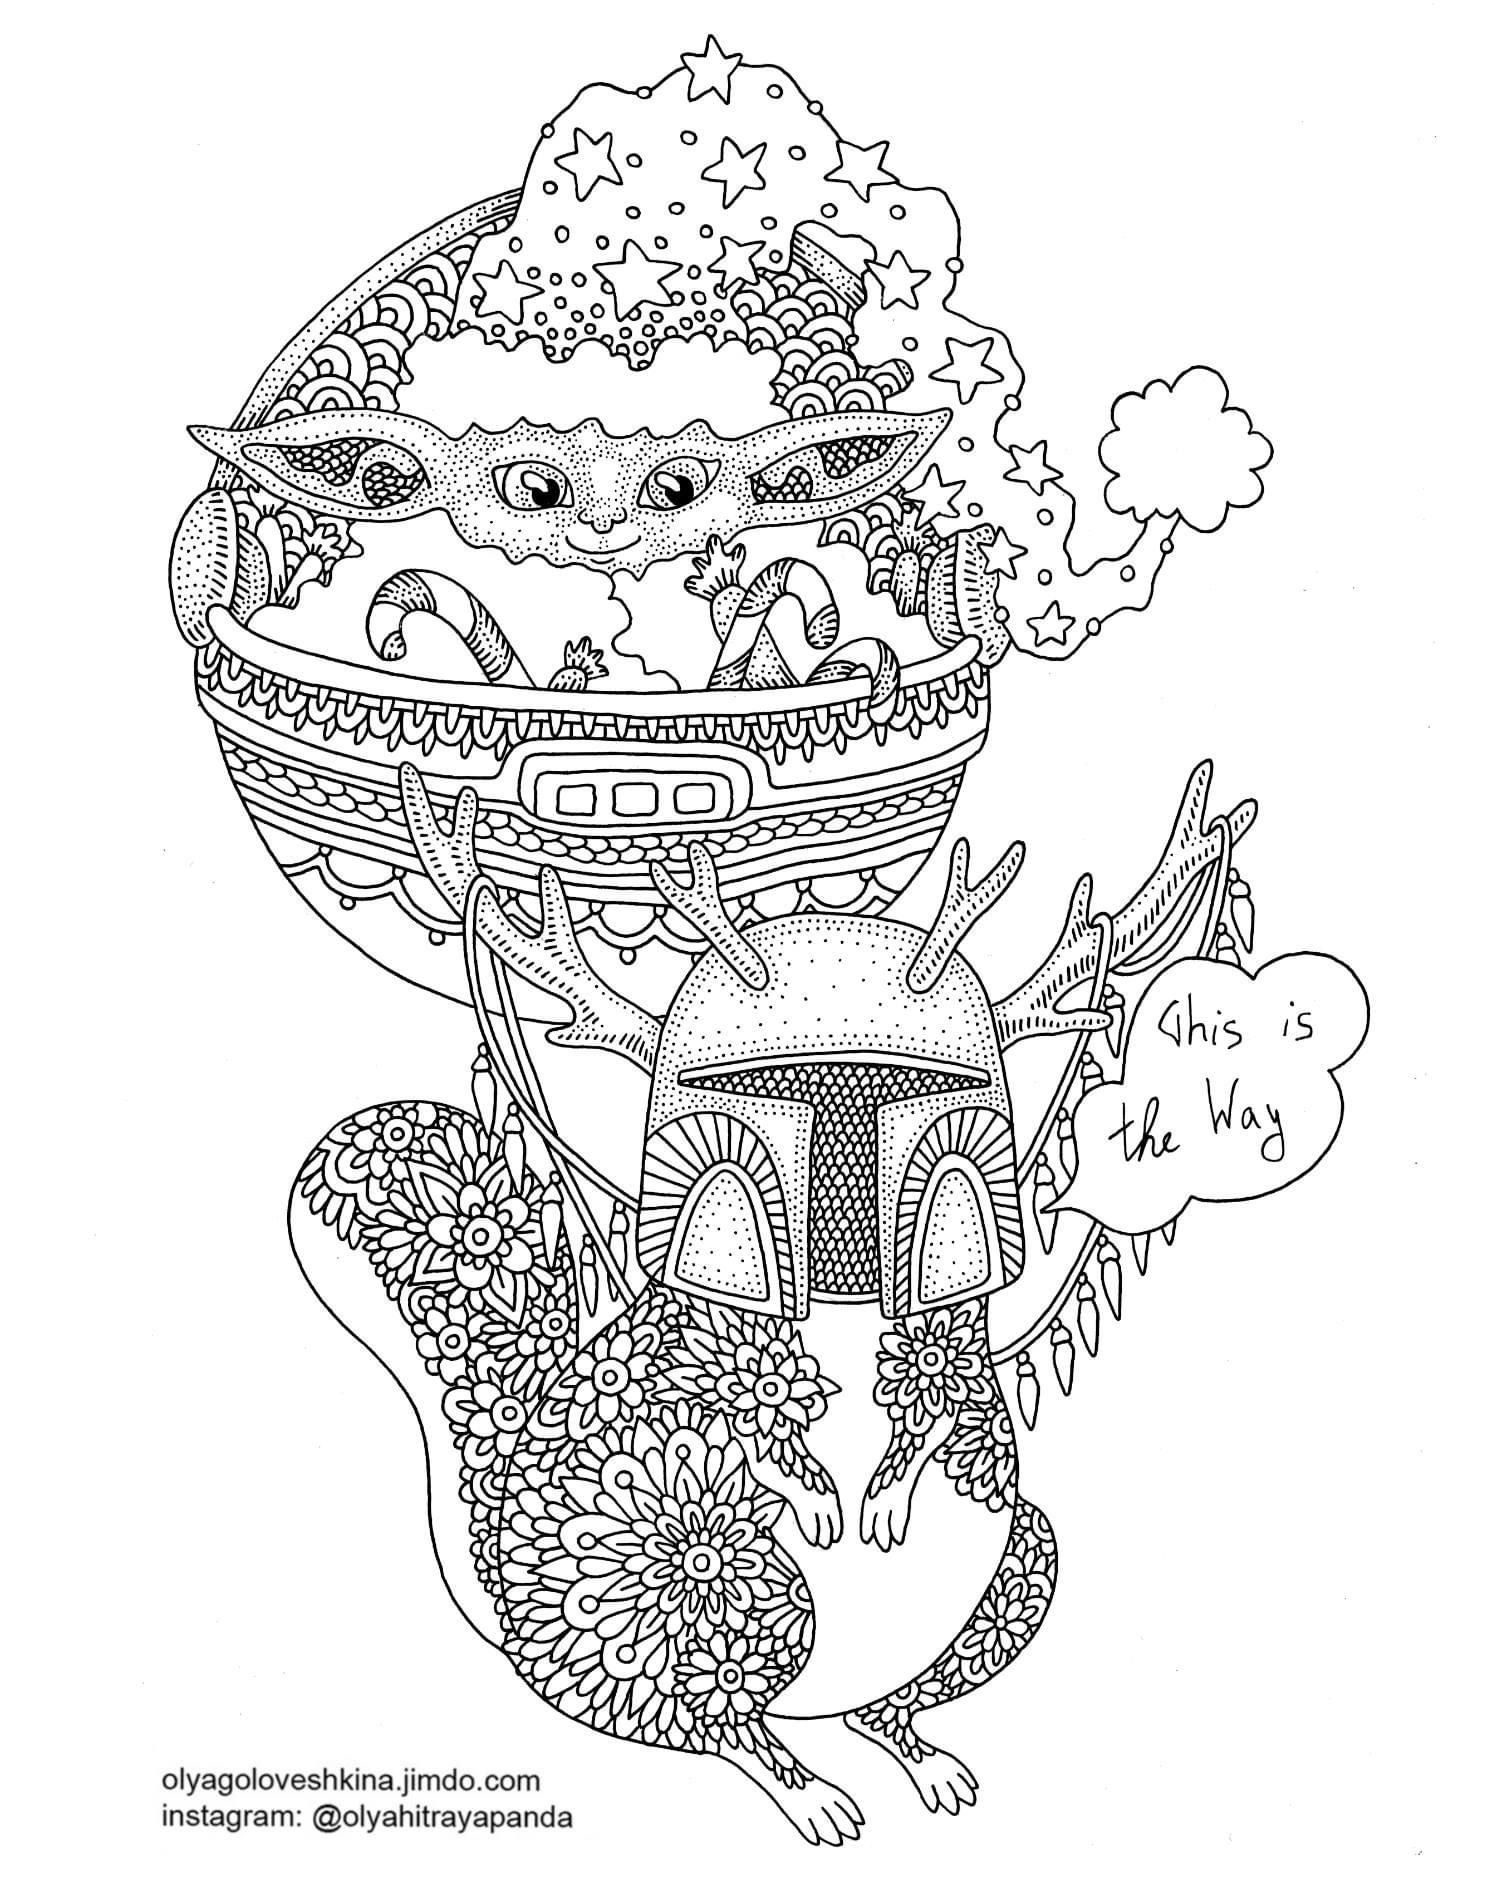 Pin By Jason Campbell On Geek Pics For The Geek In Us All Giraffe Coloring Pages Bird Coloring Pages Coloring Pages